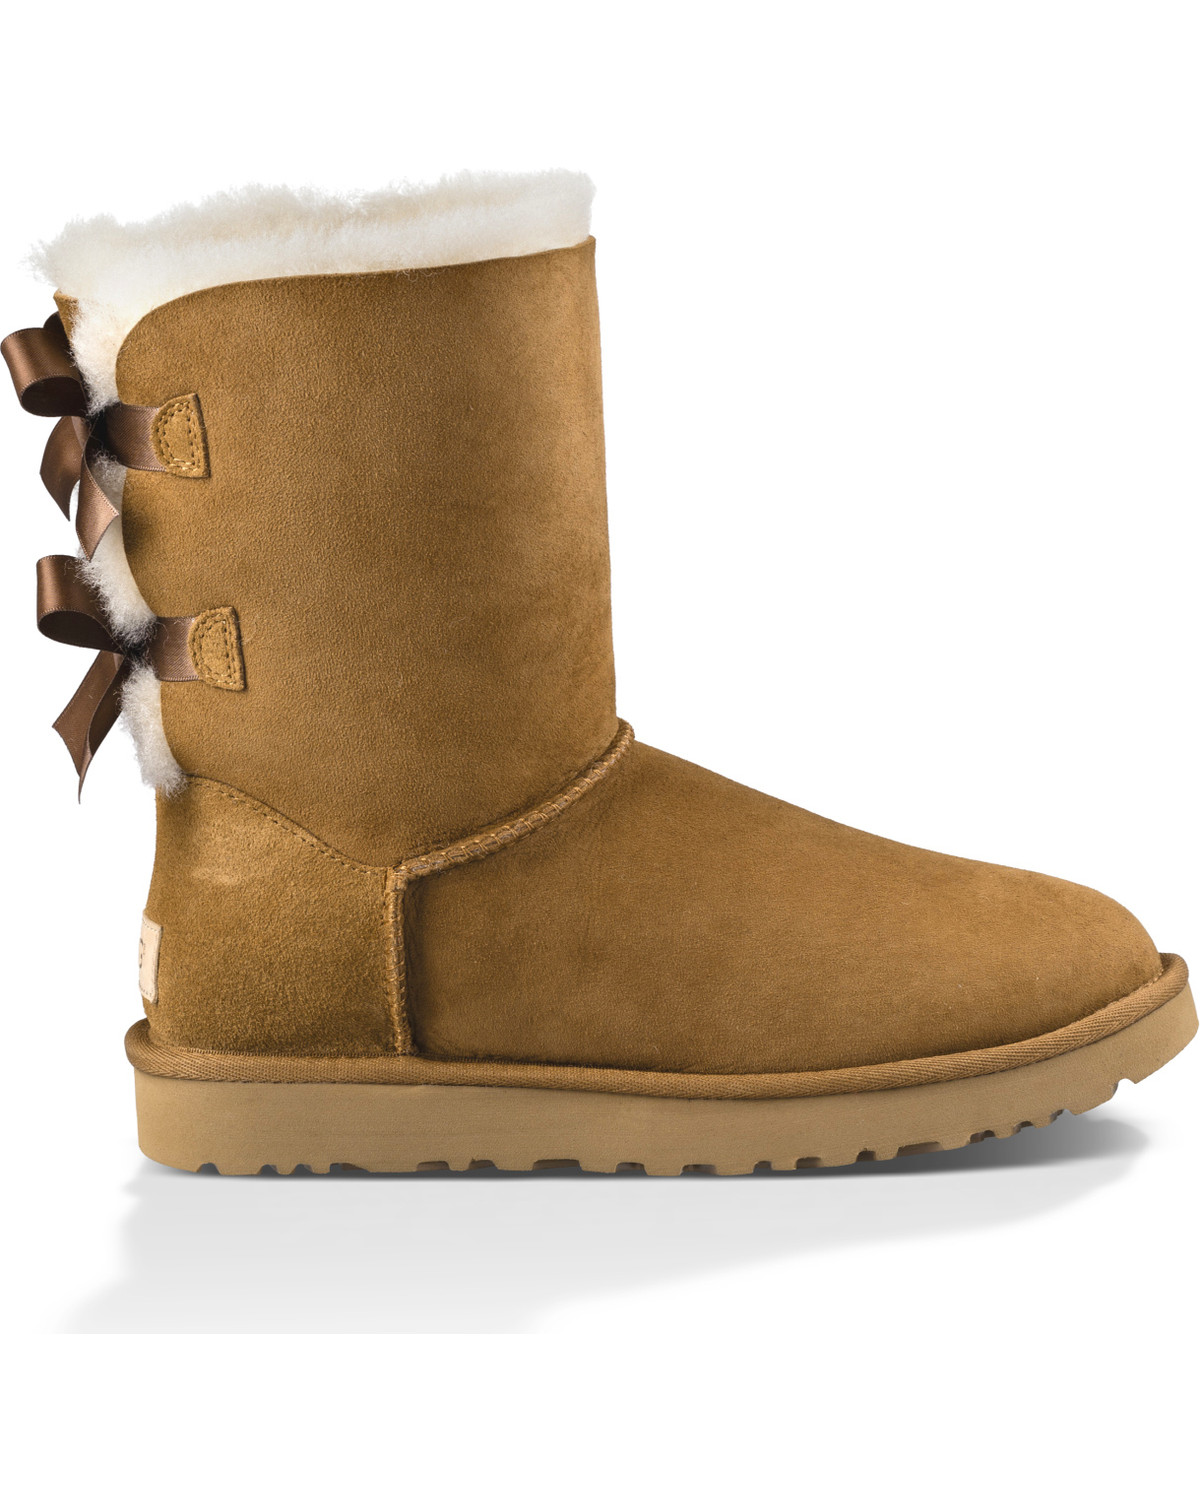 4920829c90 UGG Women s Chestnut Bailey Bow II Boots - Round Toe